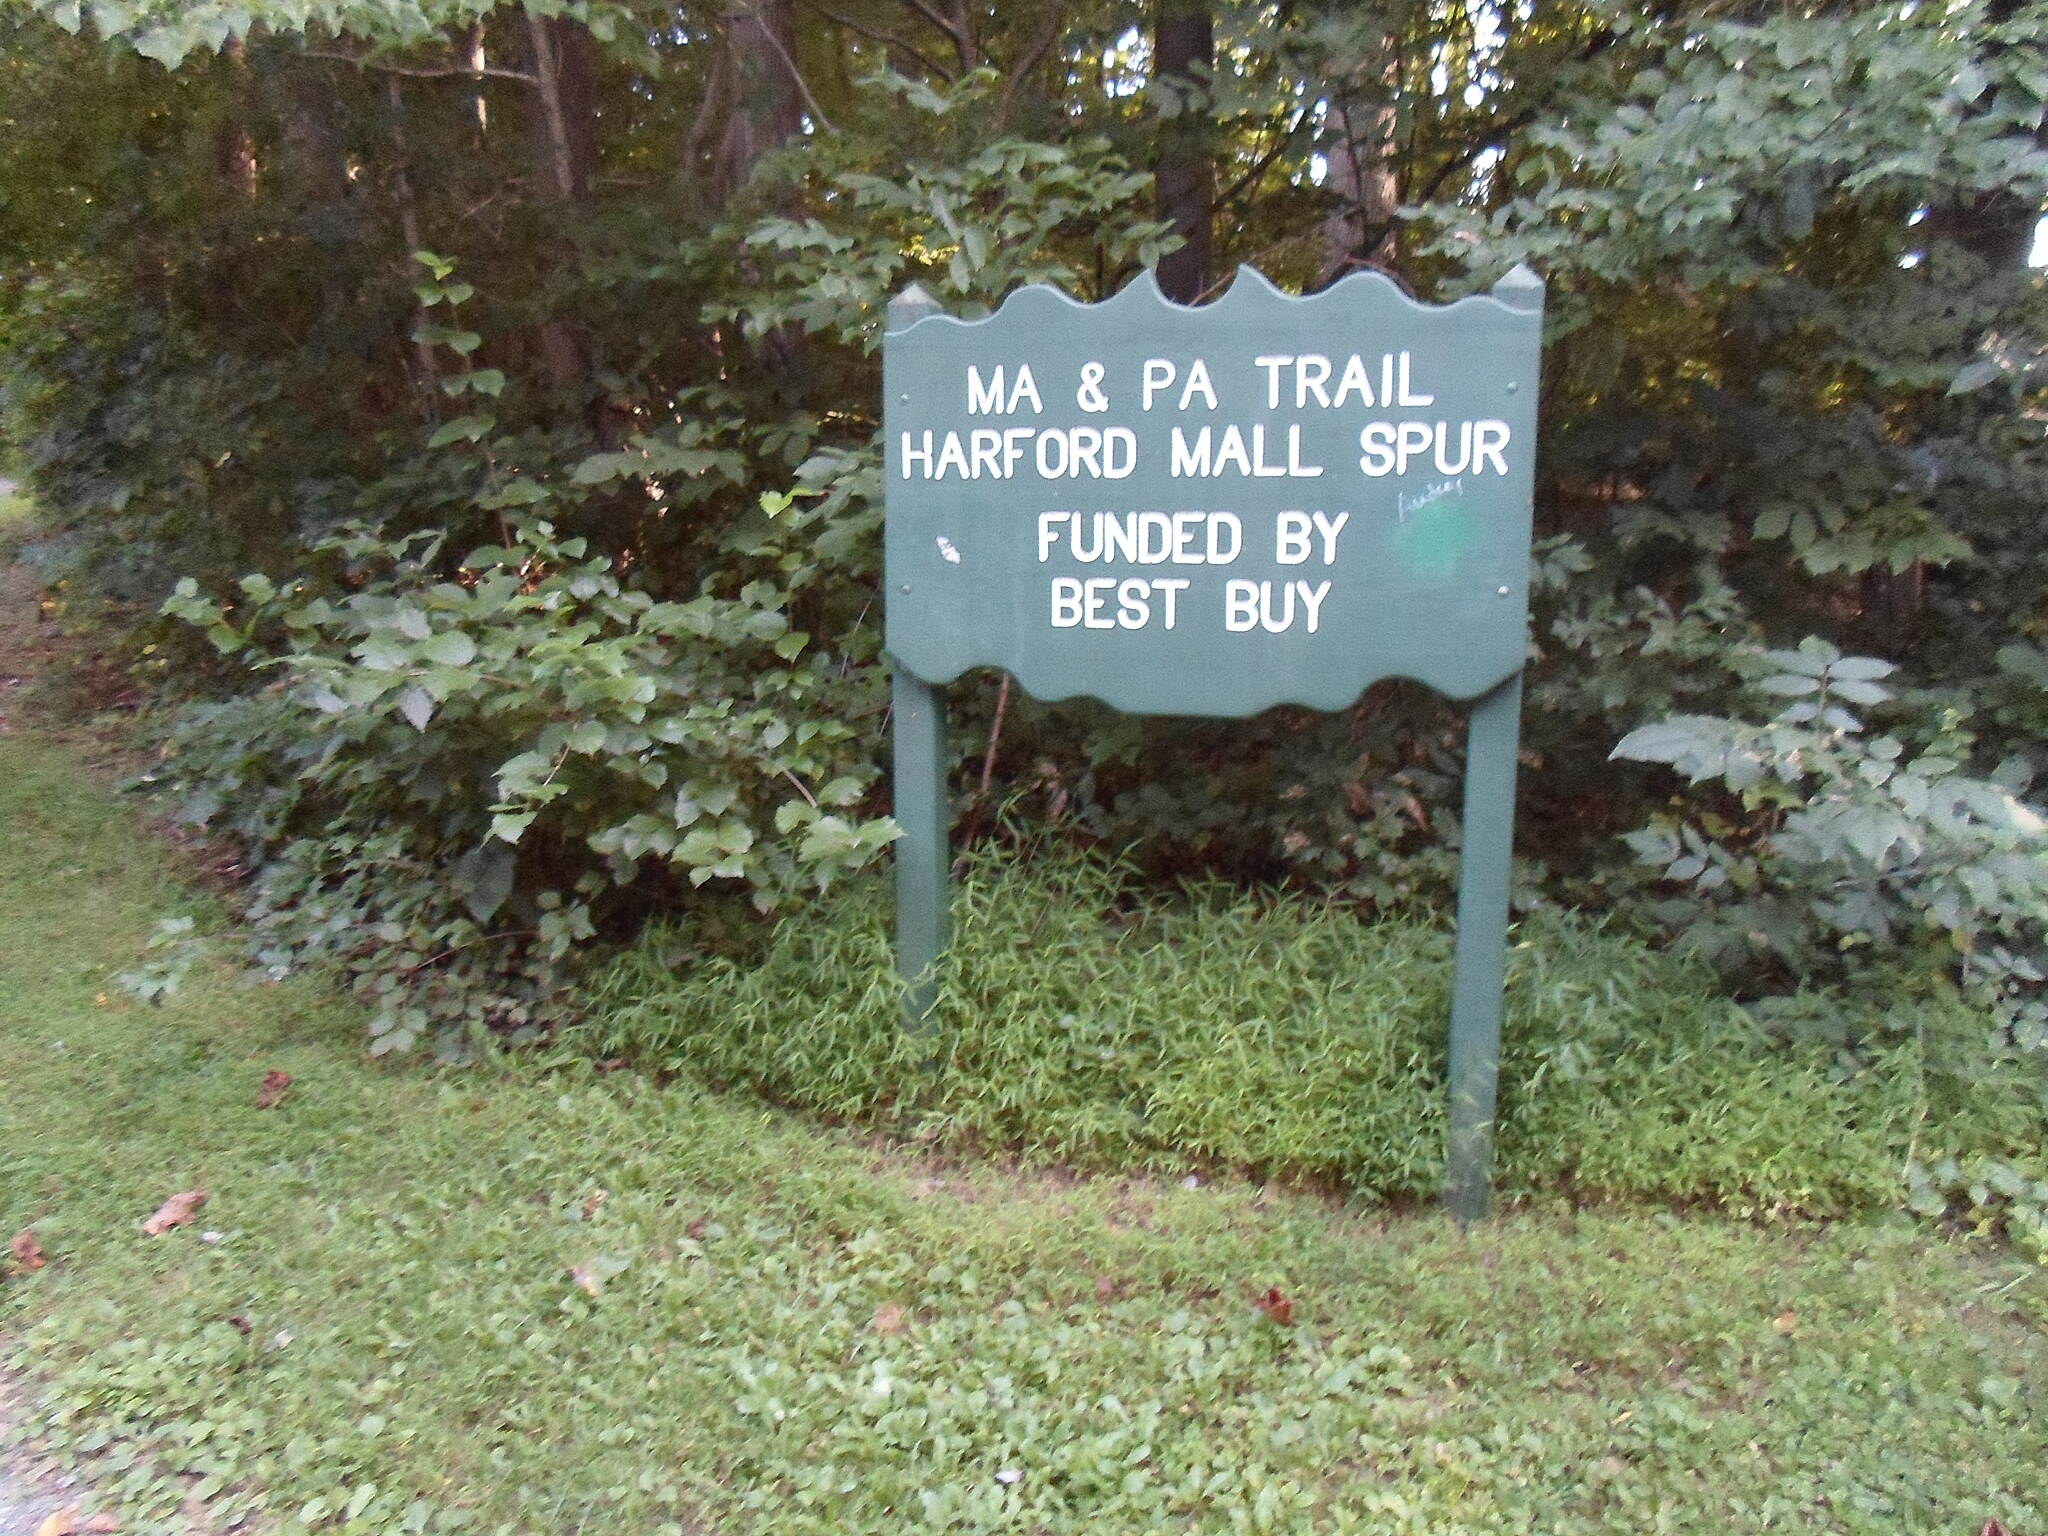 MA & PA Heritage Trail Ma & Pa Heritage Trail Sign at the beginning of the branch path to the Harford Mall. It's great when businesses take the initiative and lend their support to projects like these, instead of letting the burden fall entirely on the taxpayer. Taken Aug. 2014.